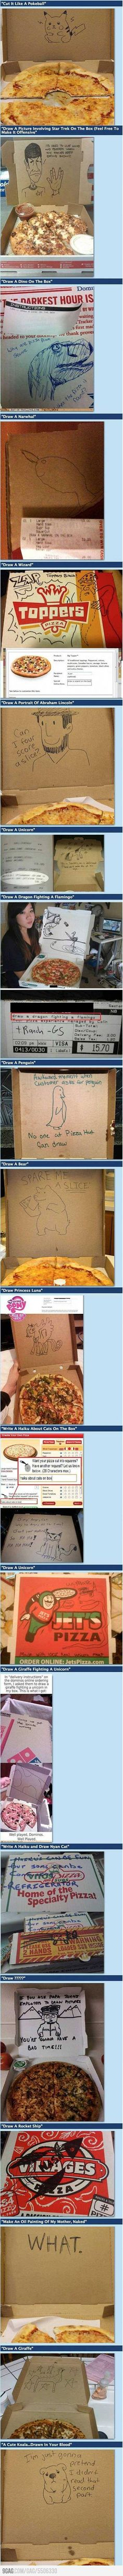 Haha so doing this next time I order a pizza!